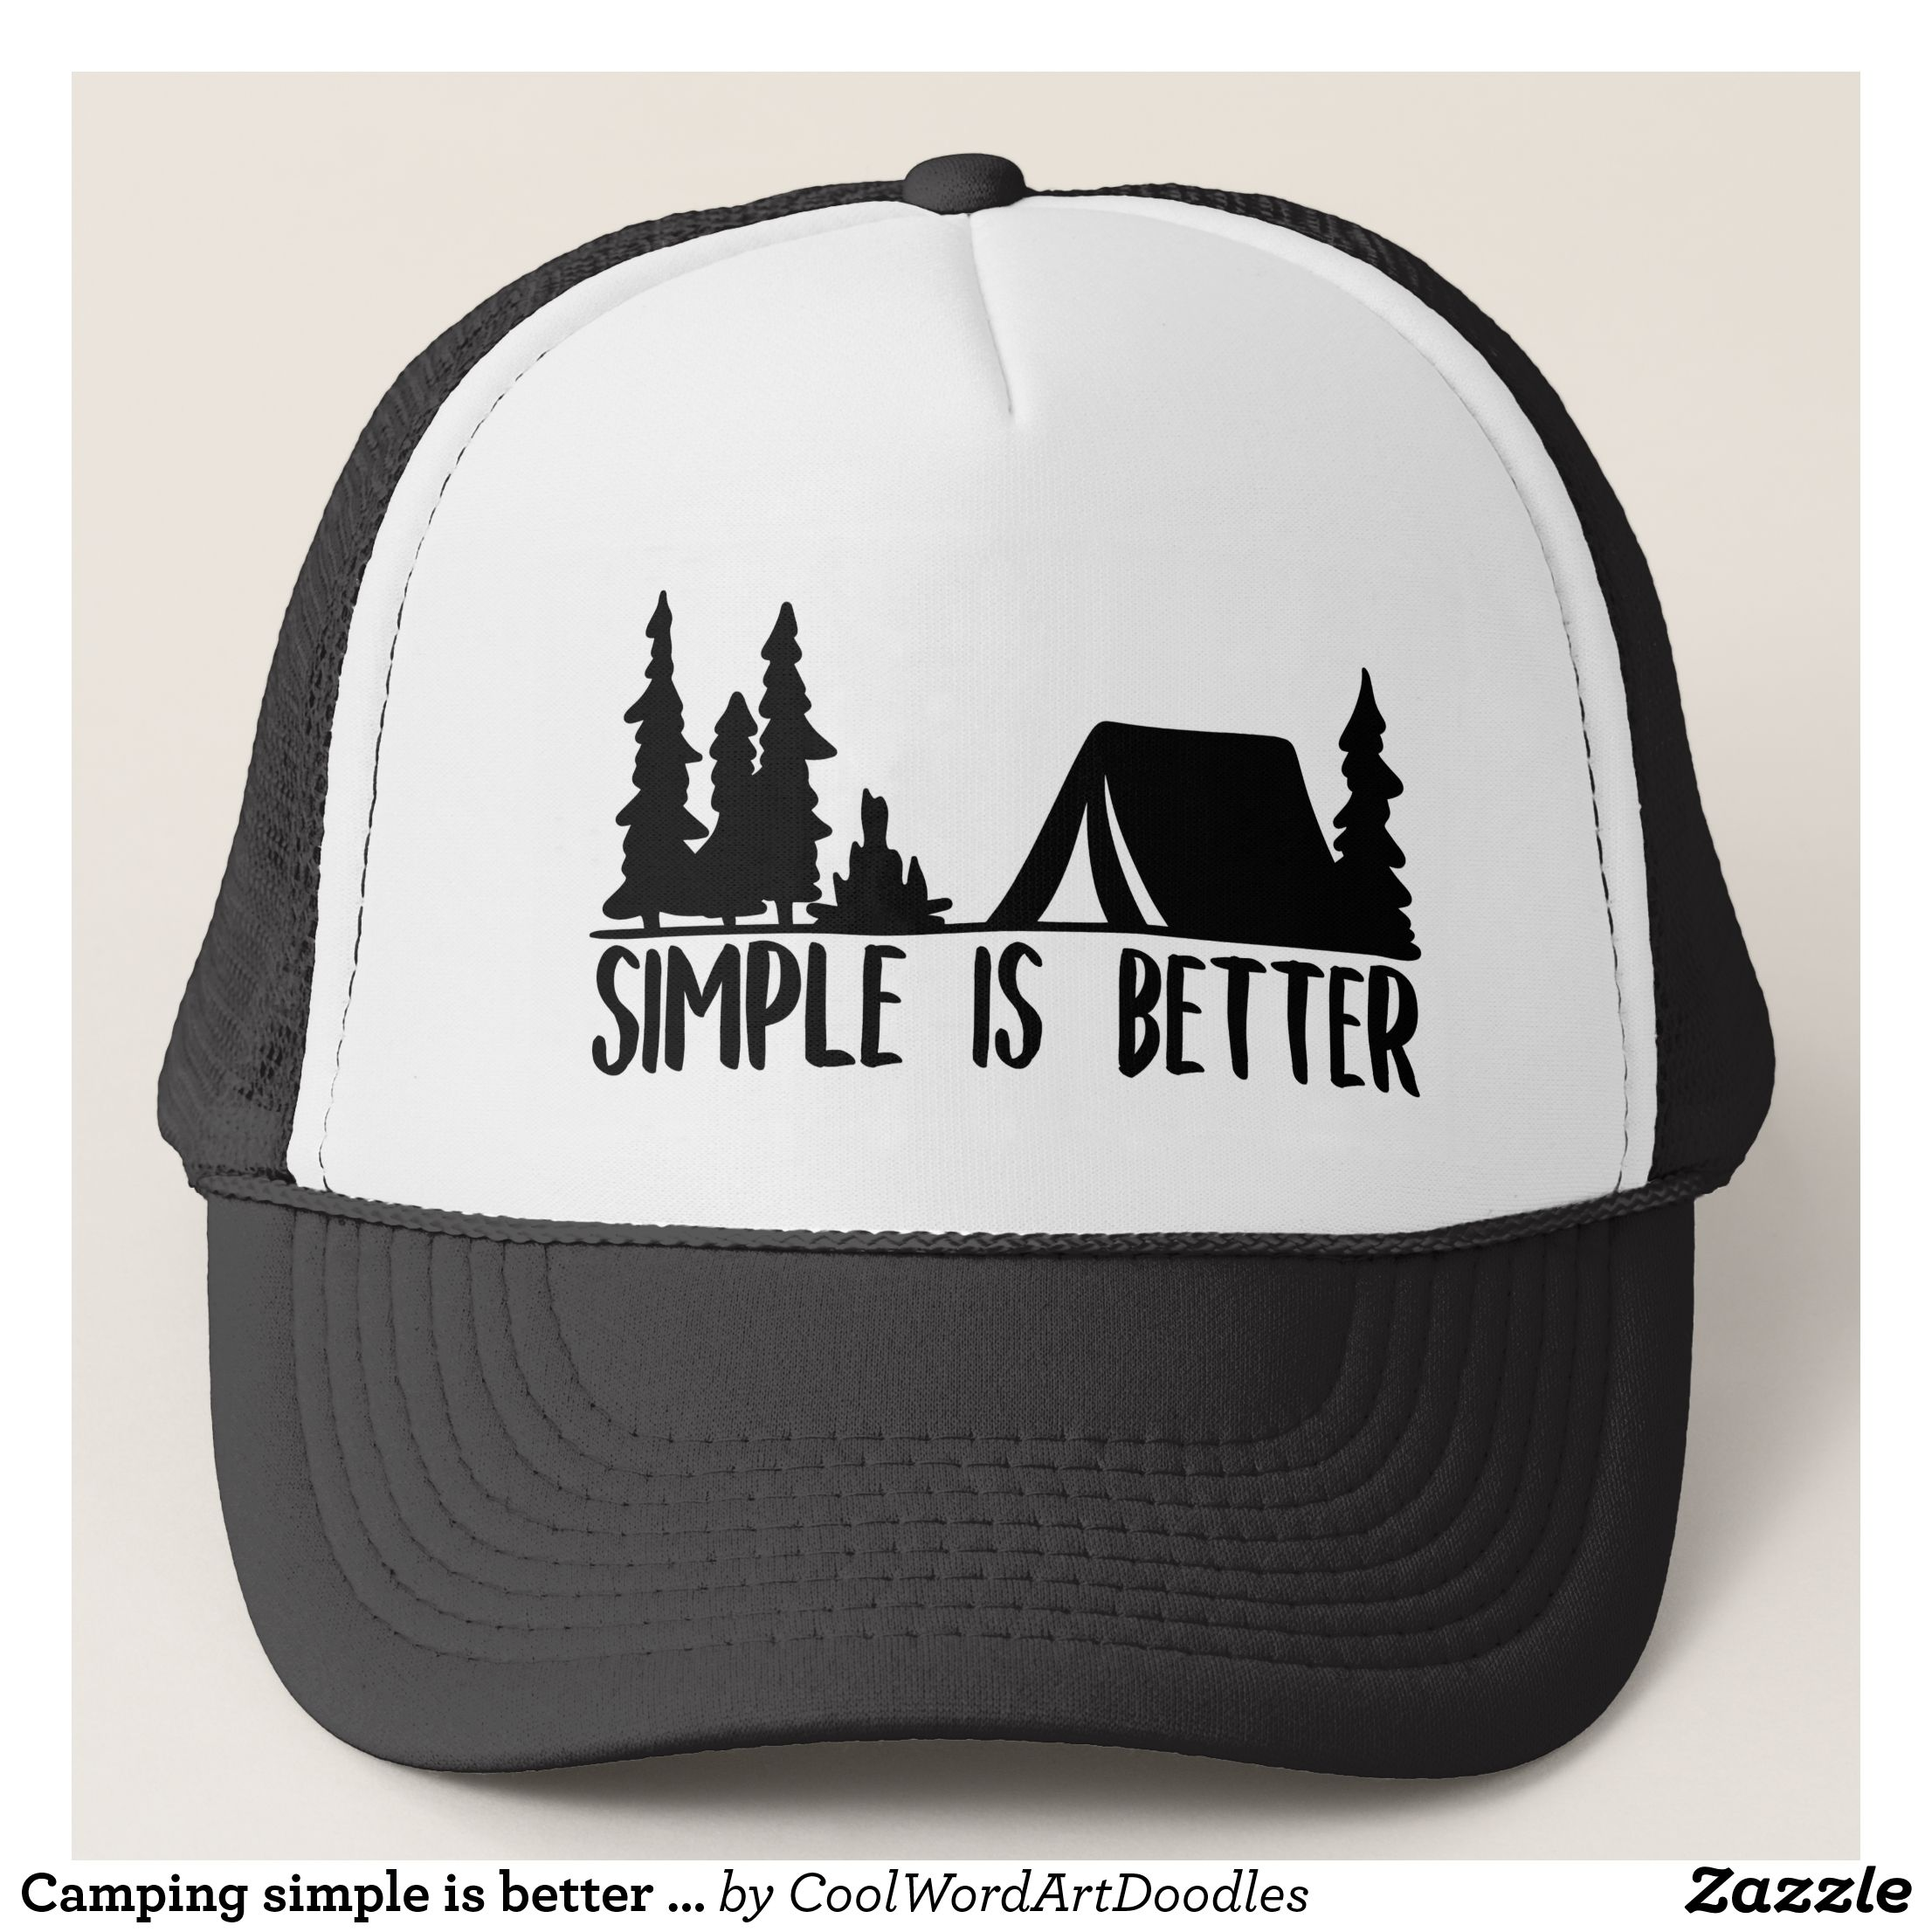 5d96412c074 Camping simple is better words hat - Urban Hunter Fisher Farmer Redneck  Hats By Talented Fashion And Graphic Designers -  hats  truckerhat   mensfashion ...